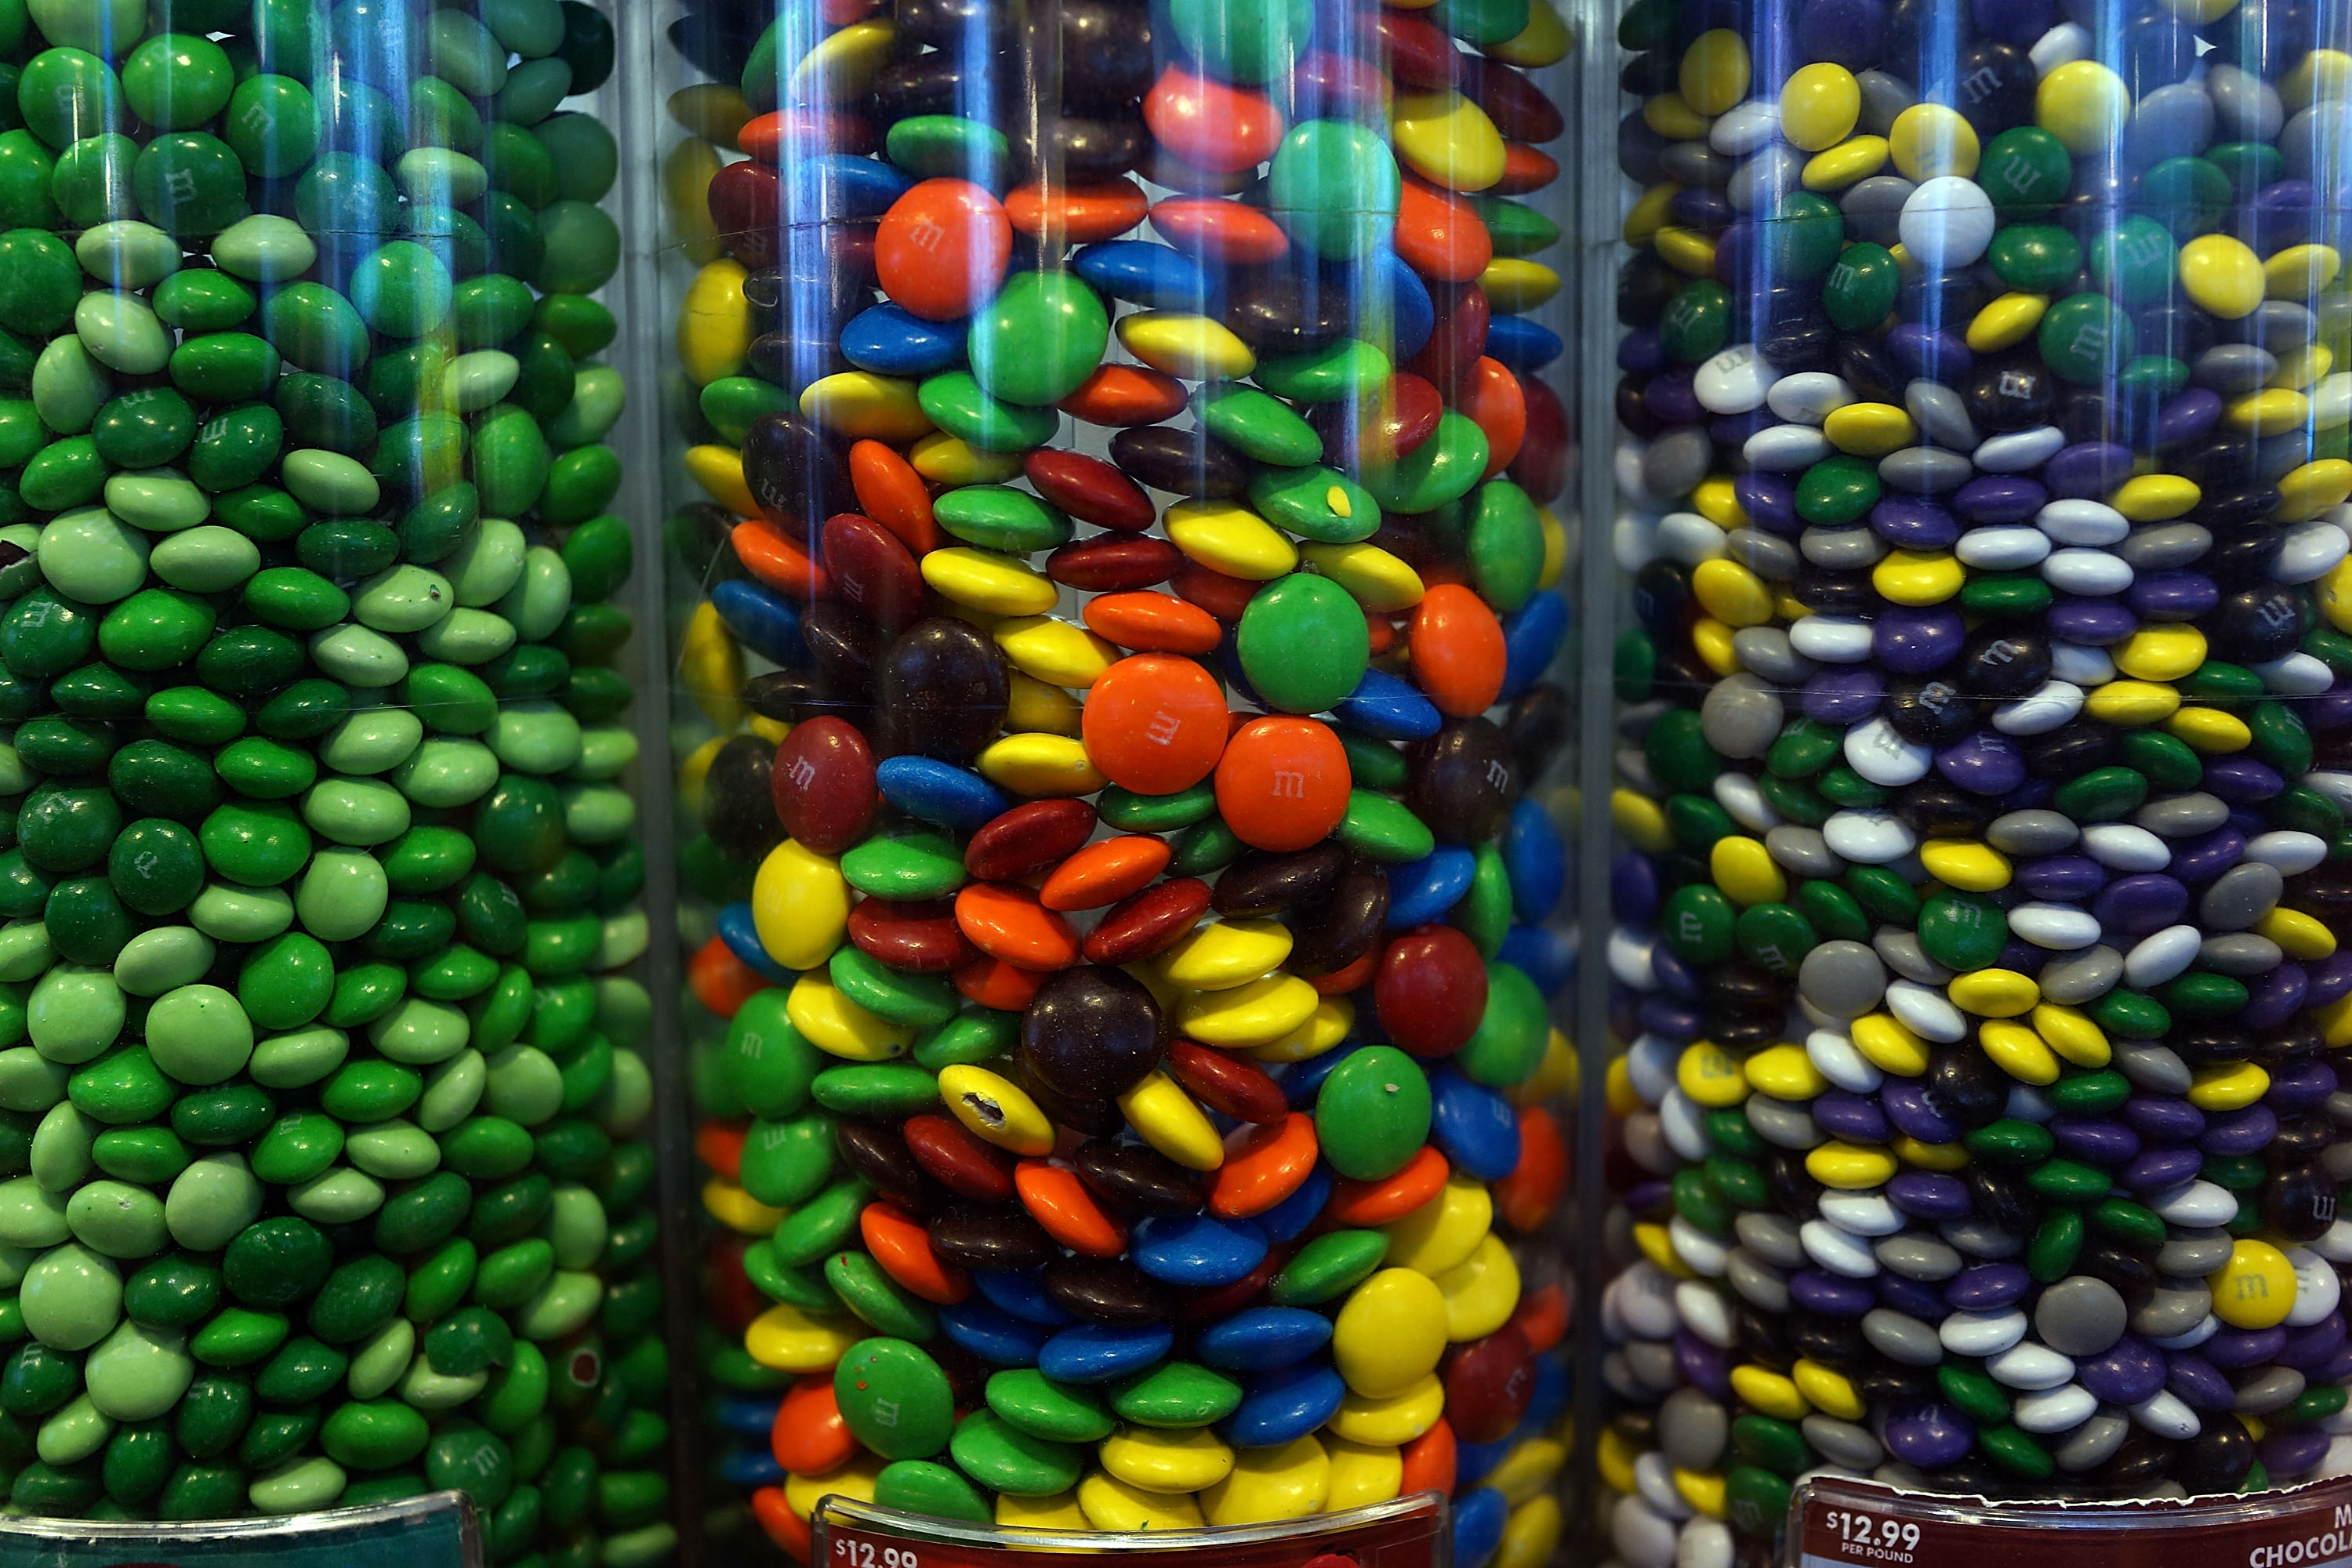 Candy Maker Mars To Raise Price Of M&M's And Other Chocolate Candies